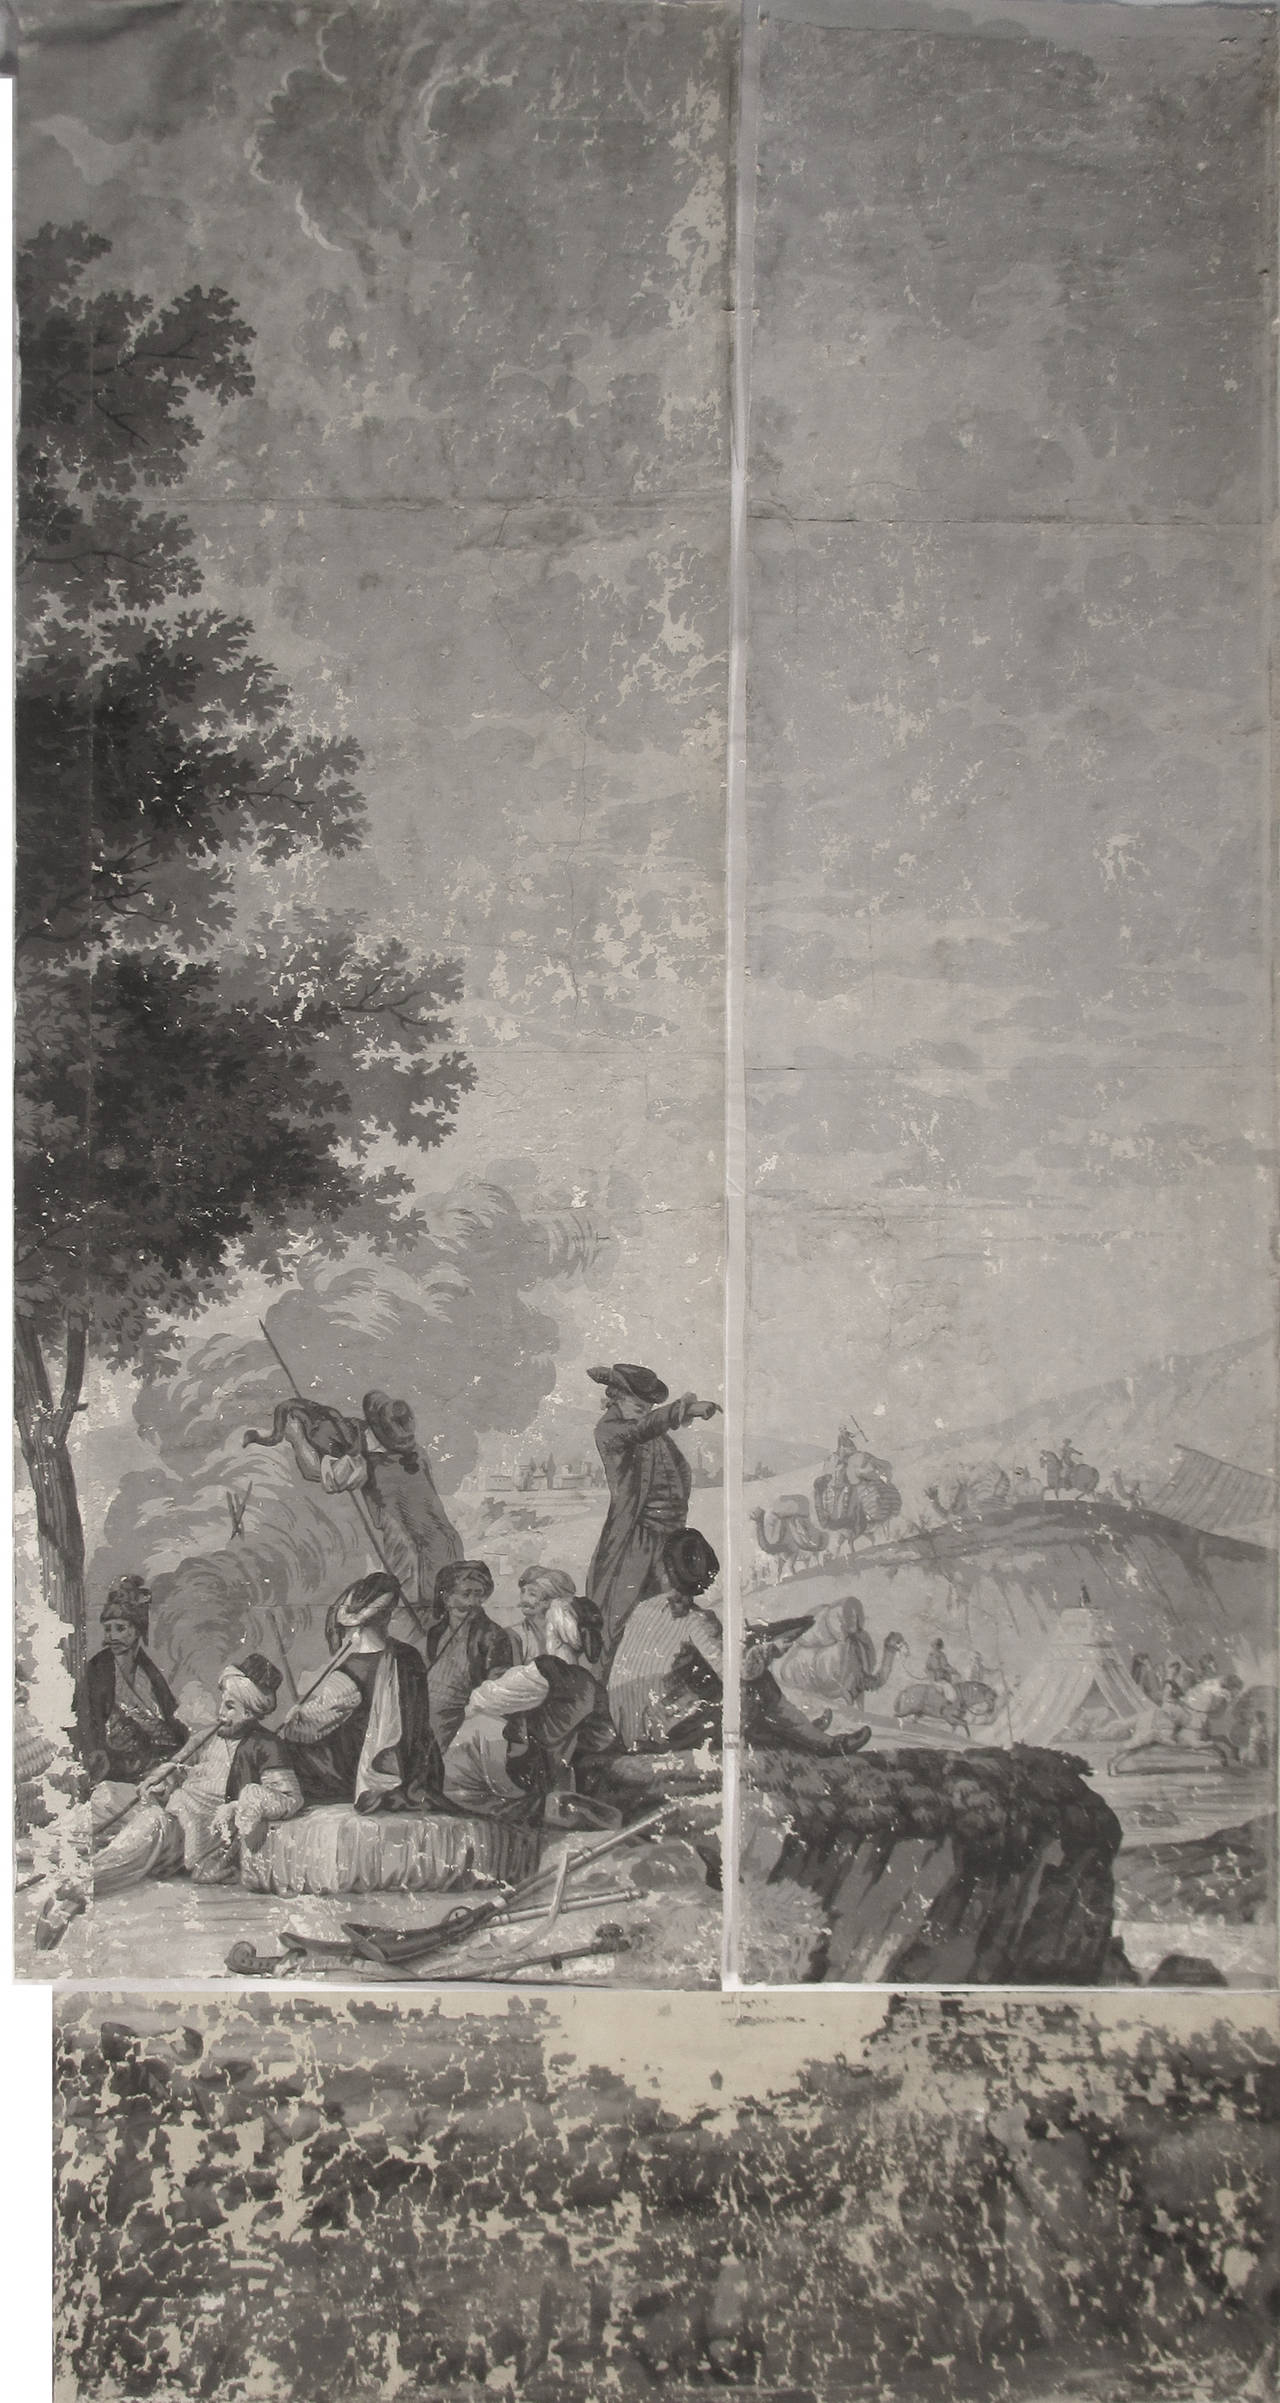 21 Wallpaper Panels, by Joseph Dufour Et Cie, After Comte de Choiseul-Gouffier 9